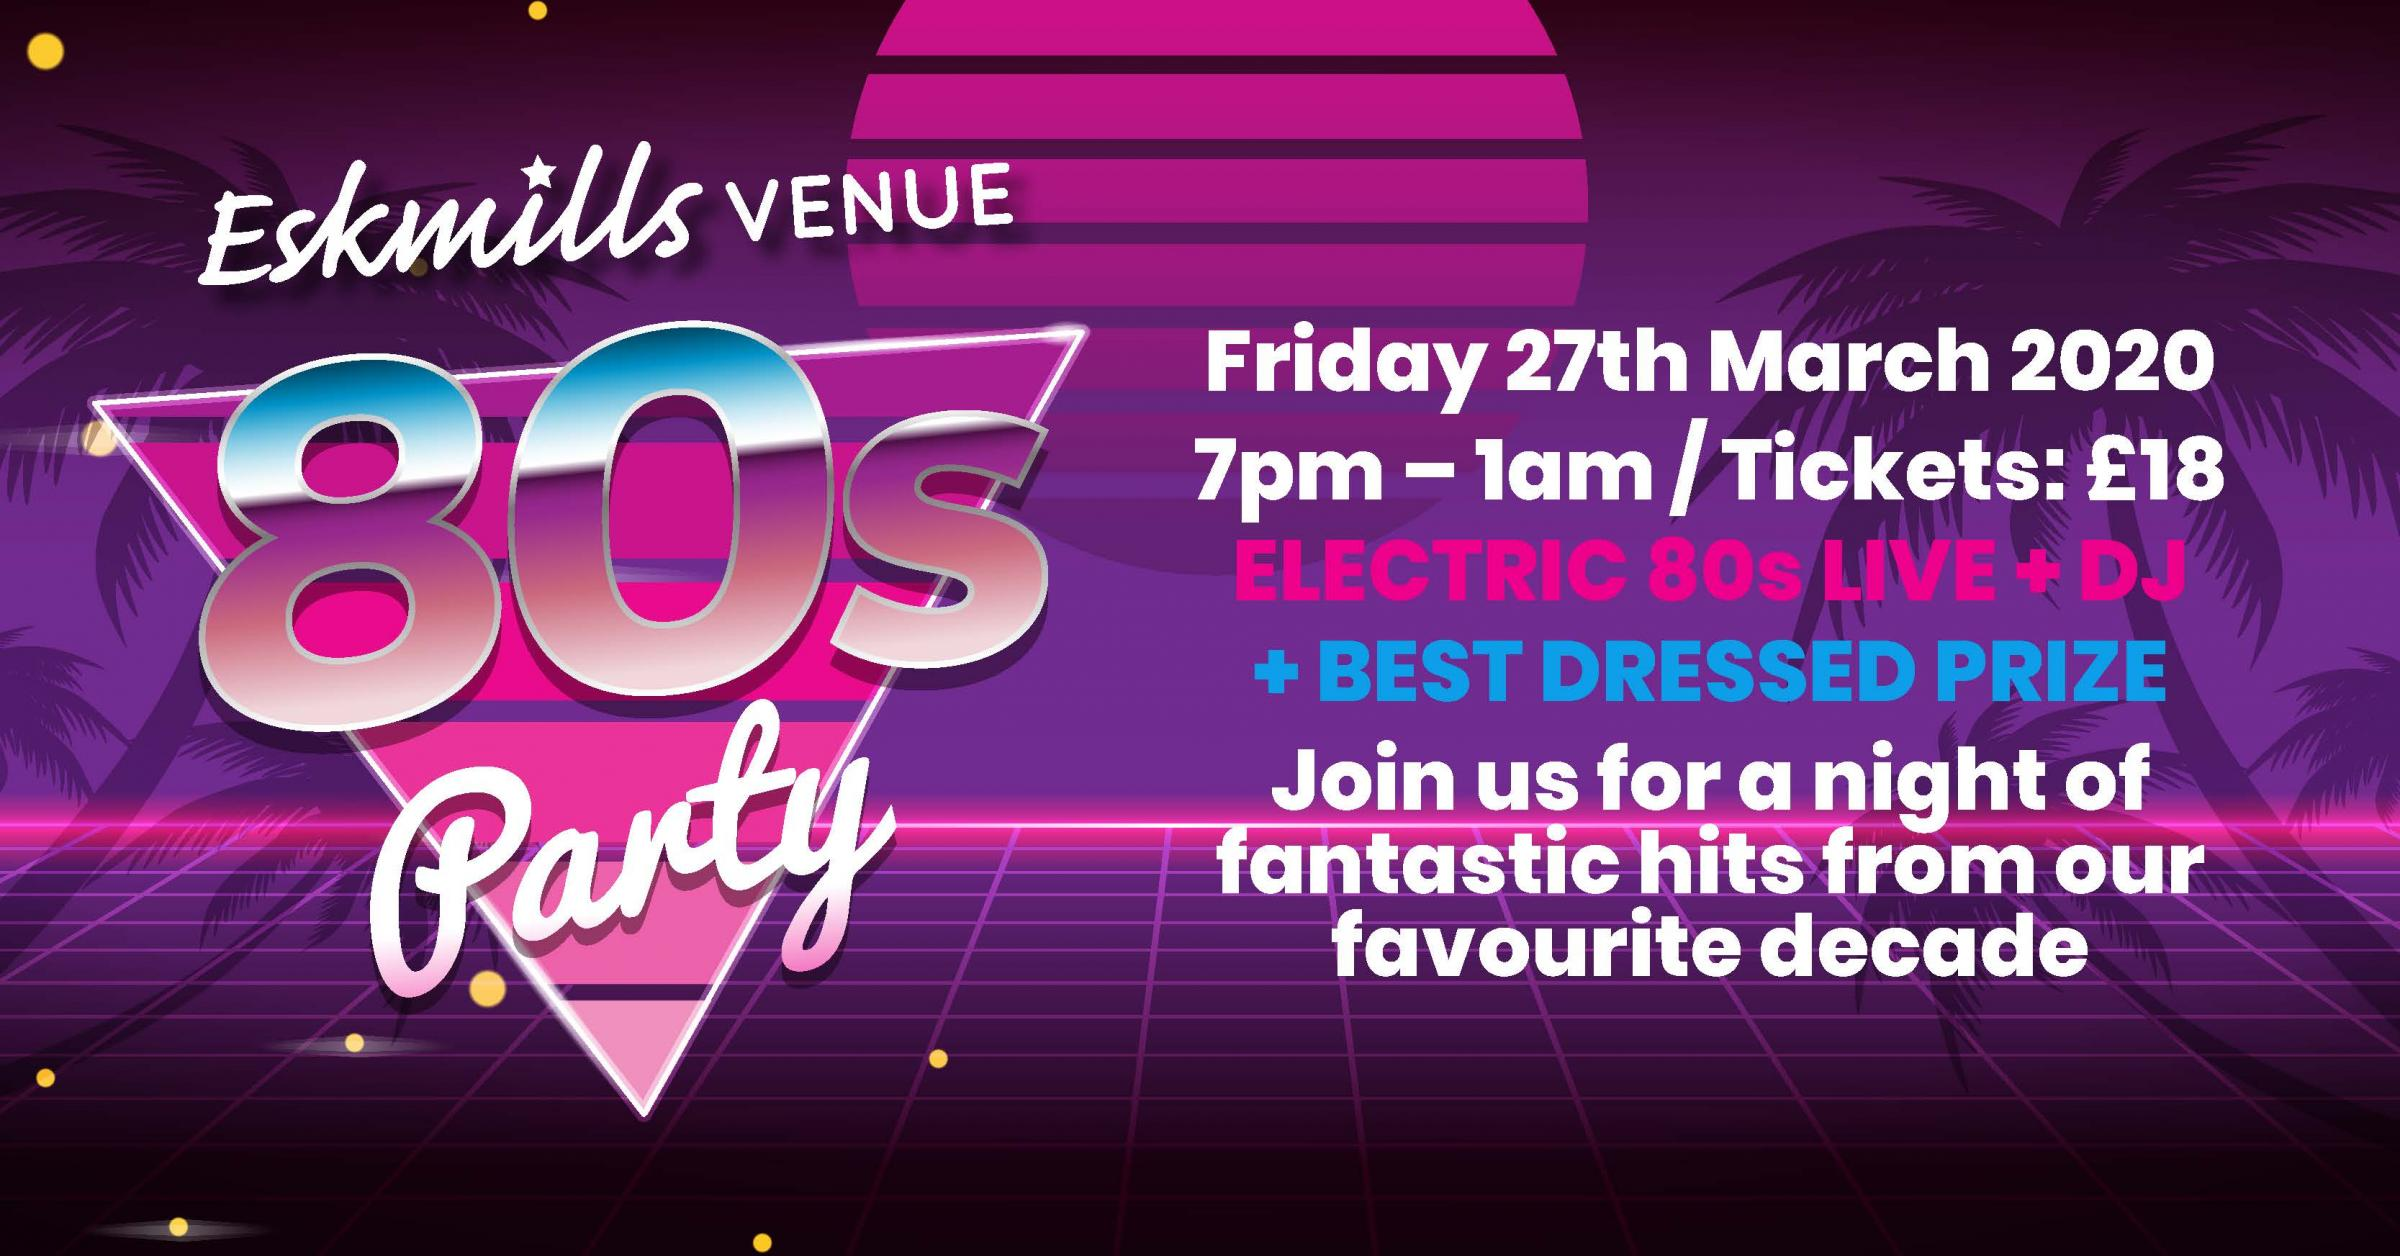 Eskmills 80s Party